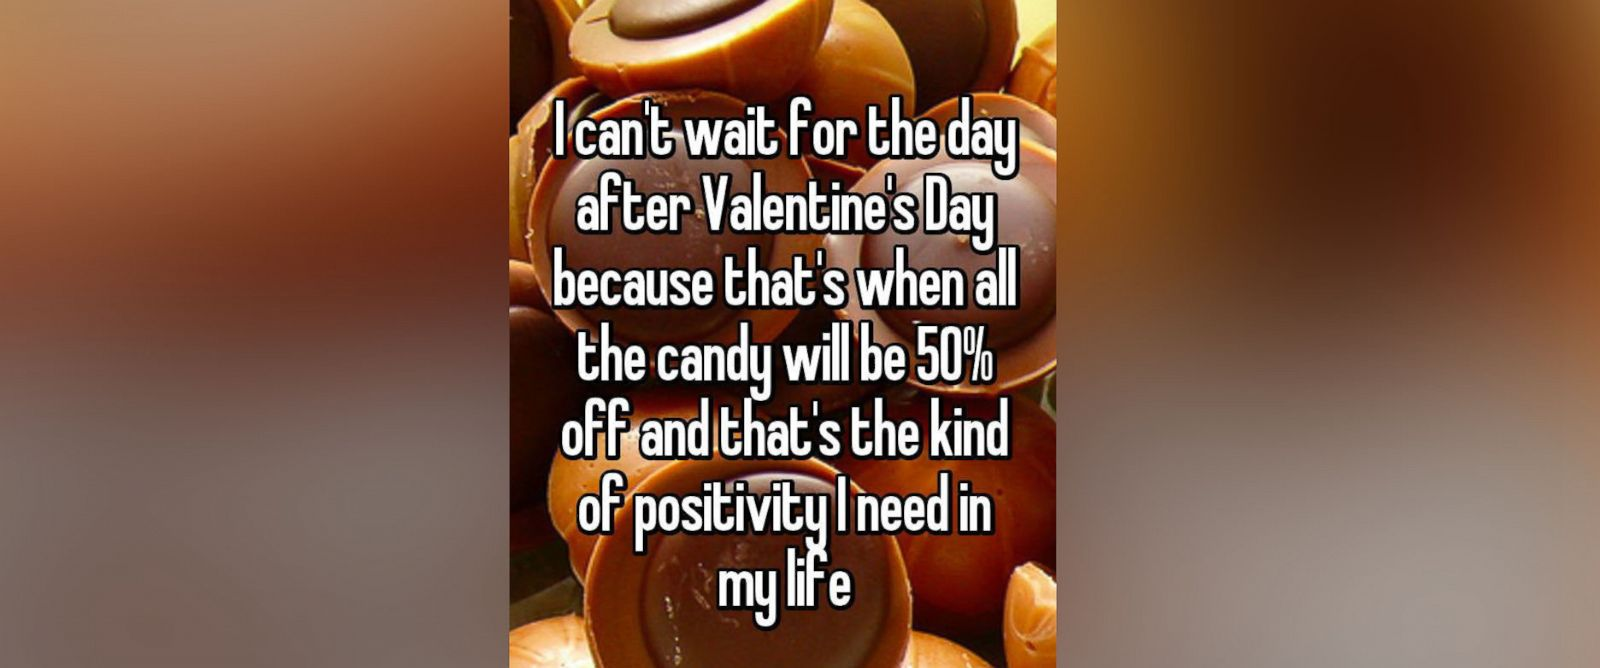 PHOTO: Whisper, the secret message app, shows what people are talking about this Valentines Day.